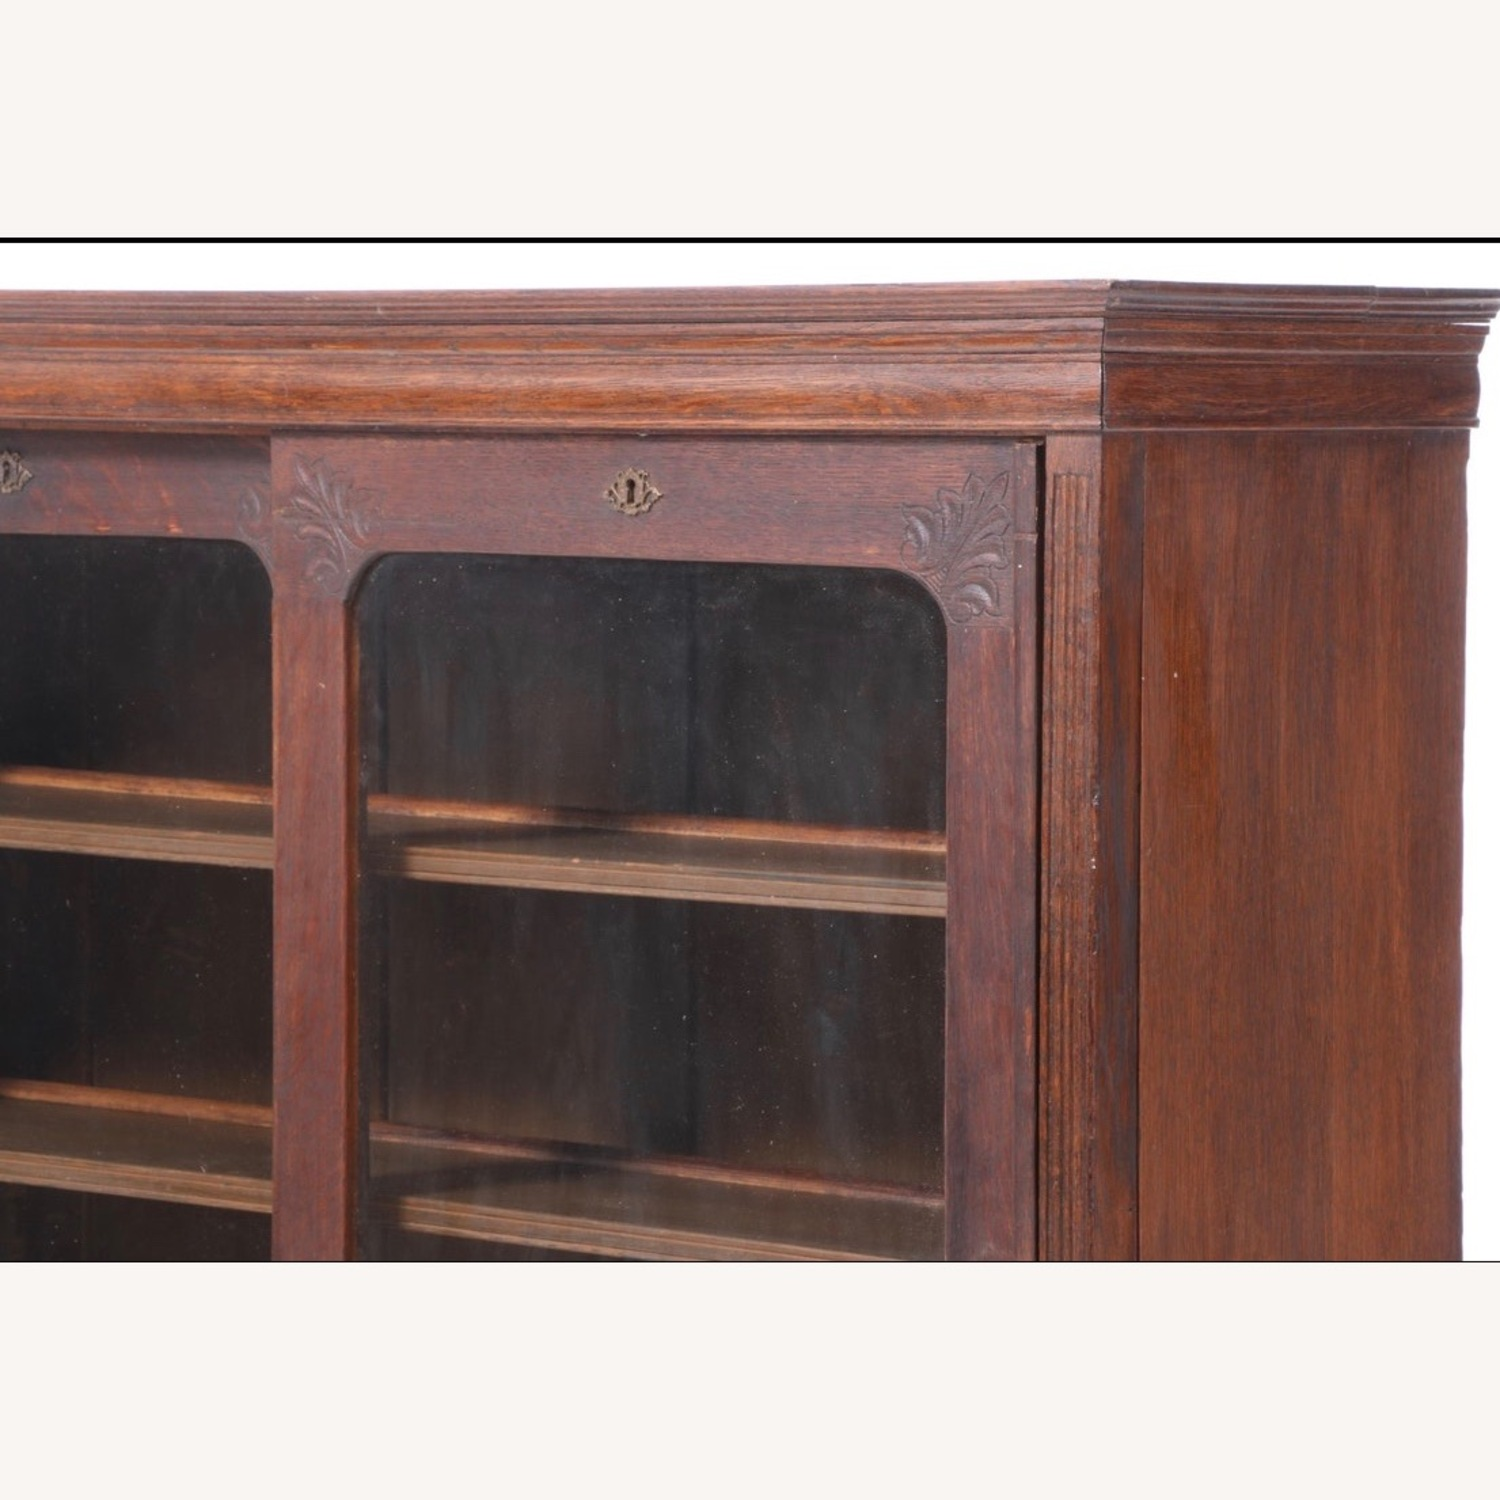 Oak Bookcase Cabinet, Early 20th Century - image-3